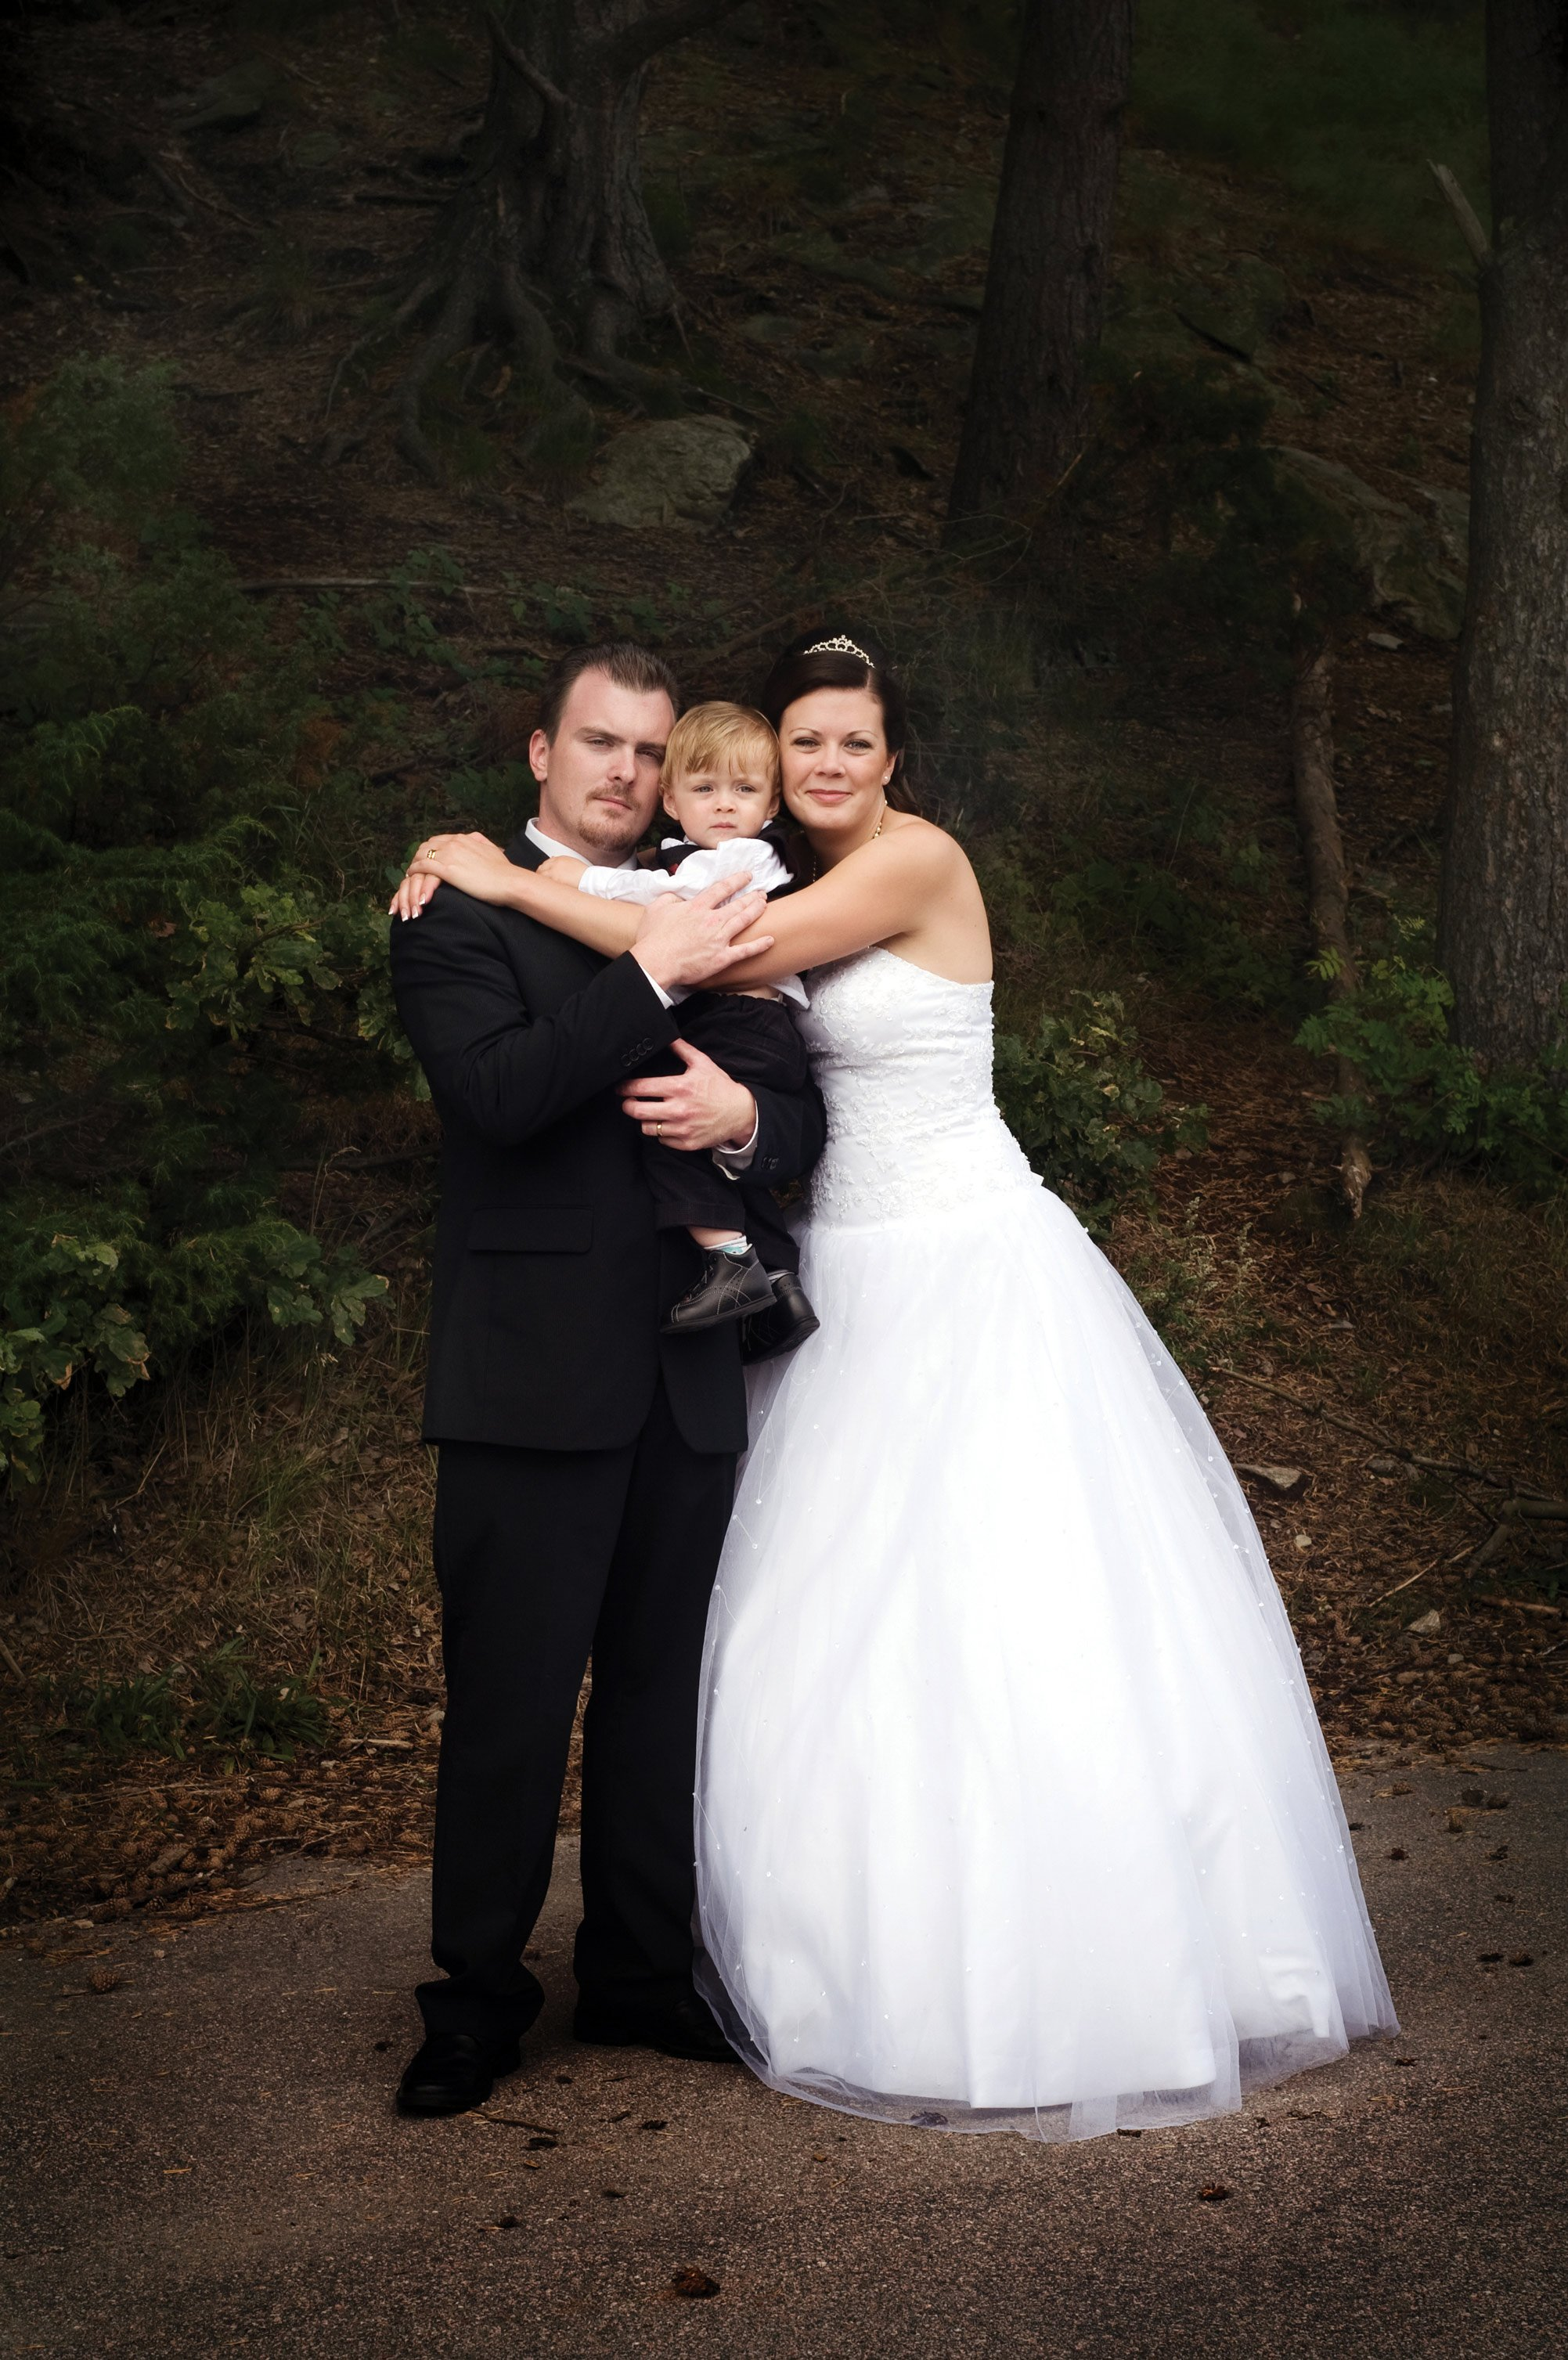 Wedding photography on location